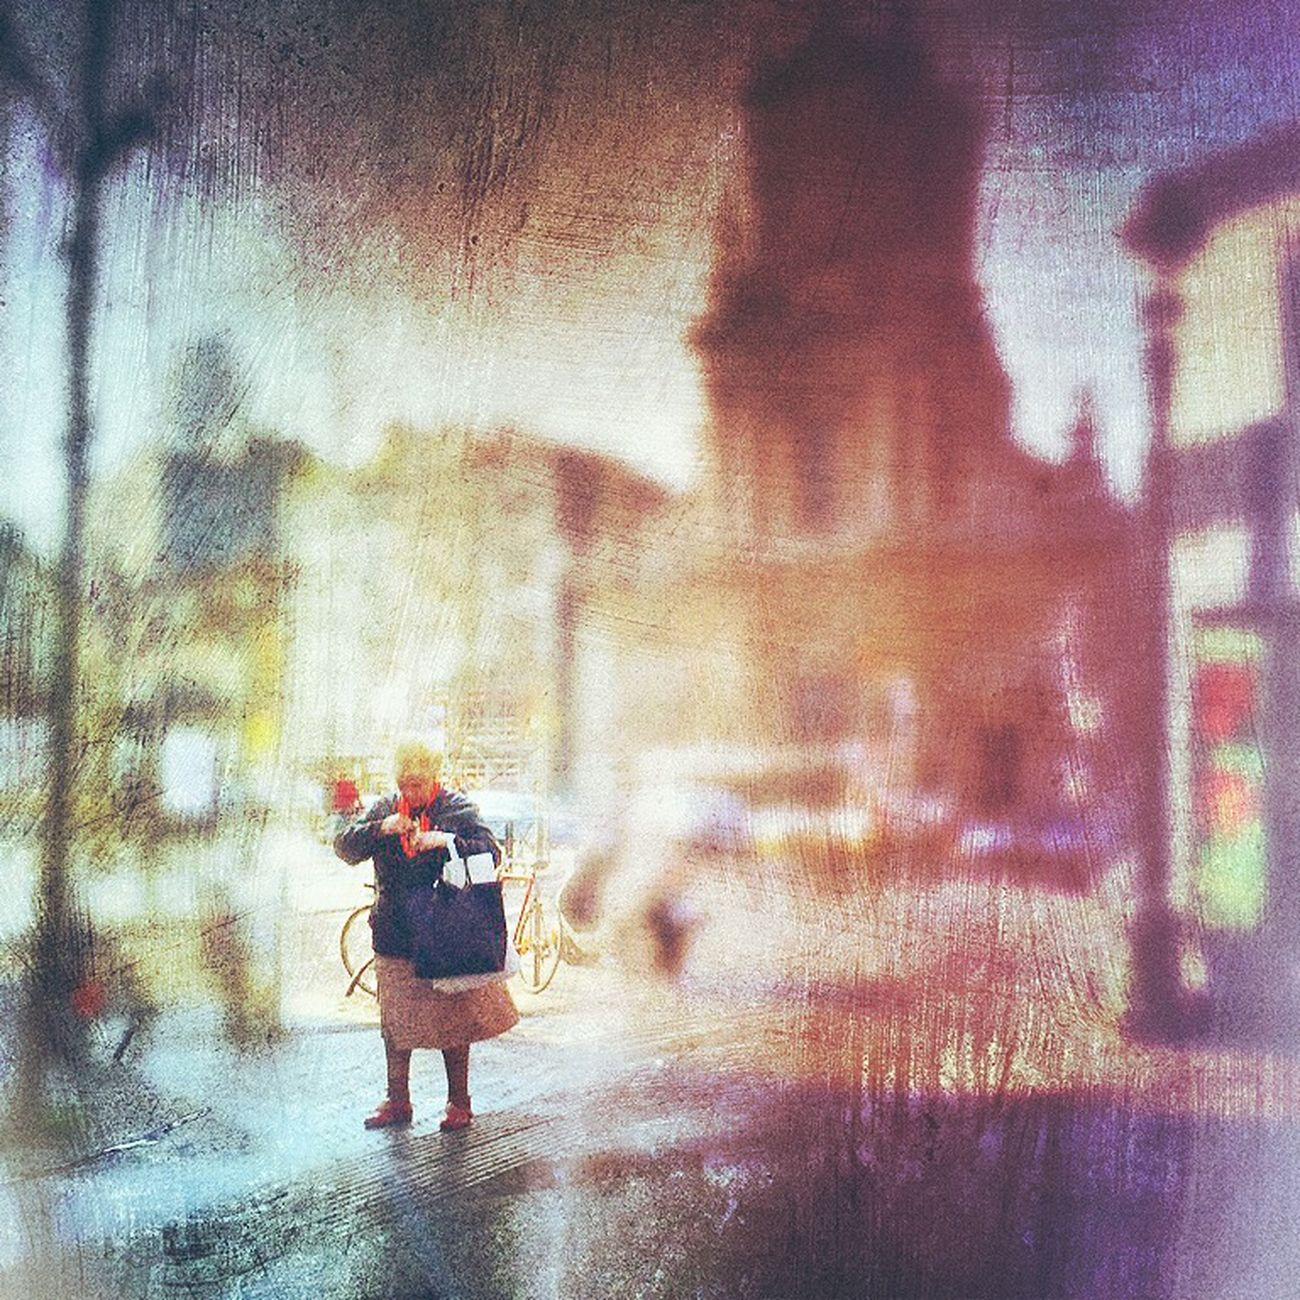 Small Scenes Of Life Lady Cold Days Street Walking City Alone Lonely